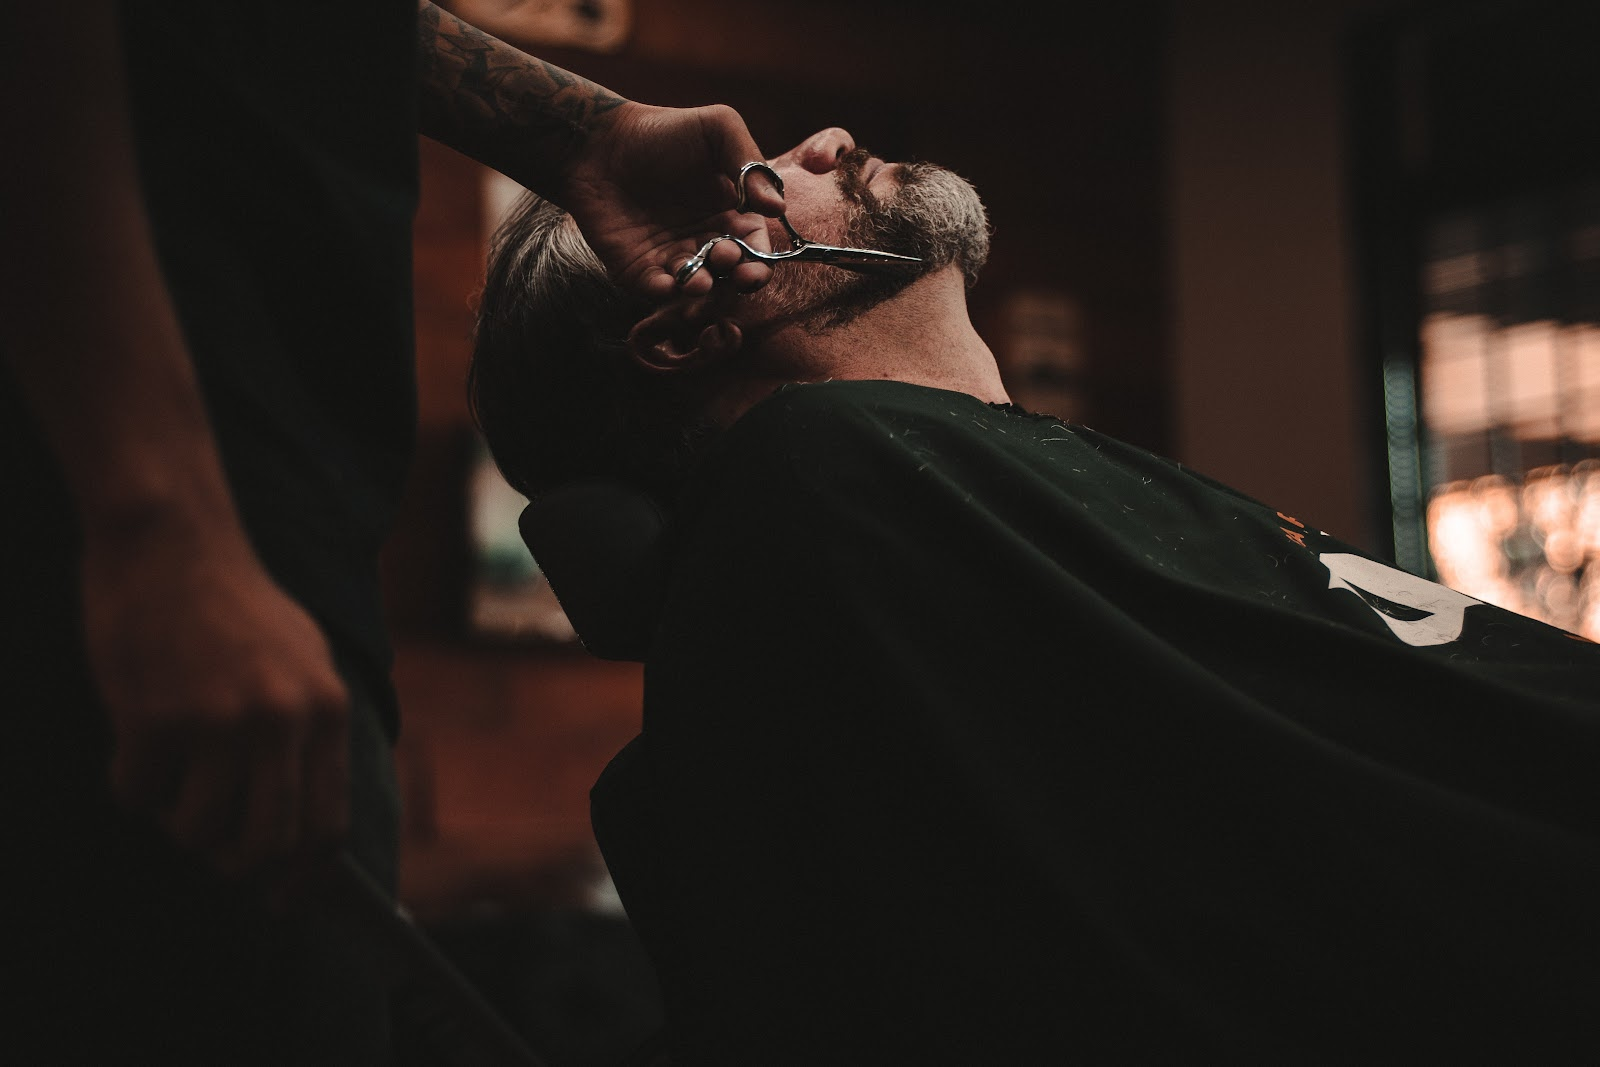 The Good Barber app connects clients with barber shops